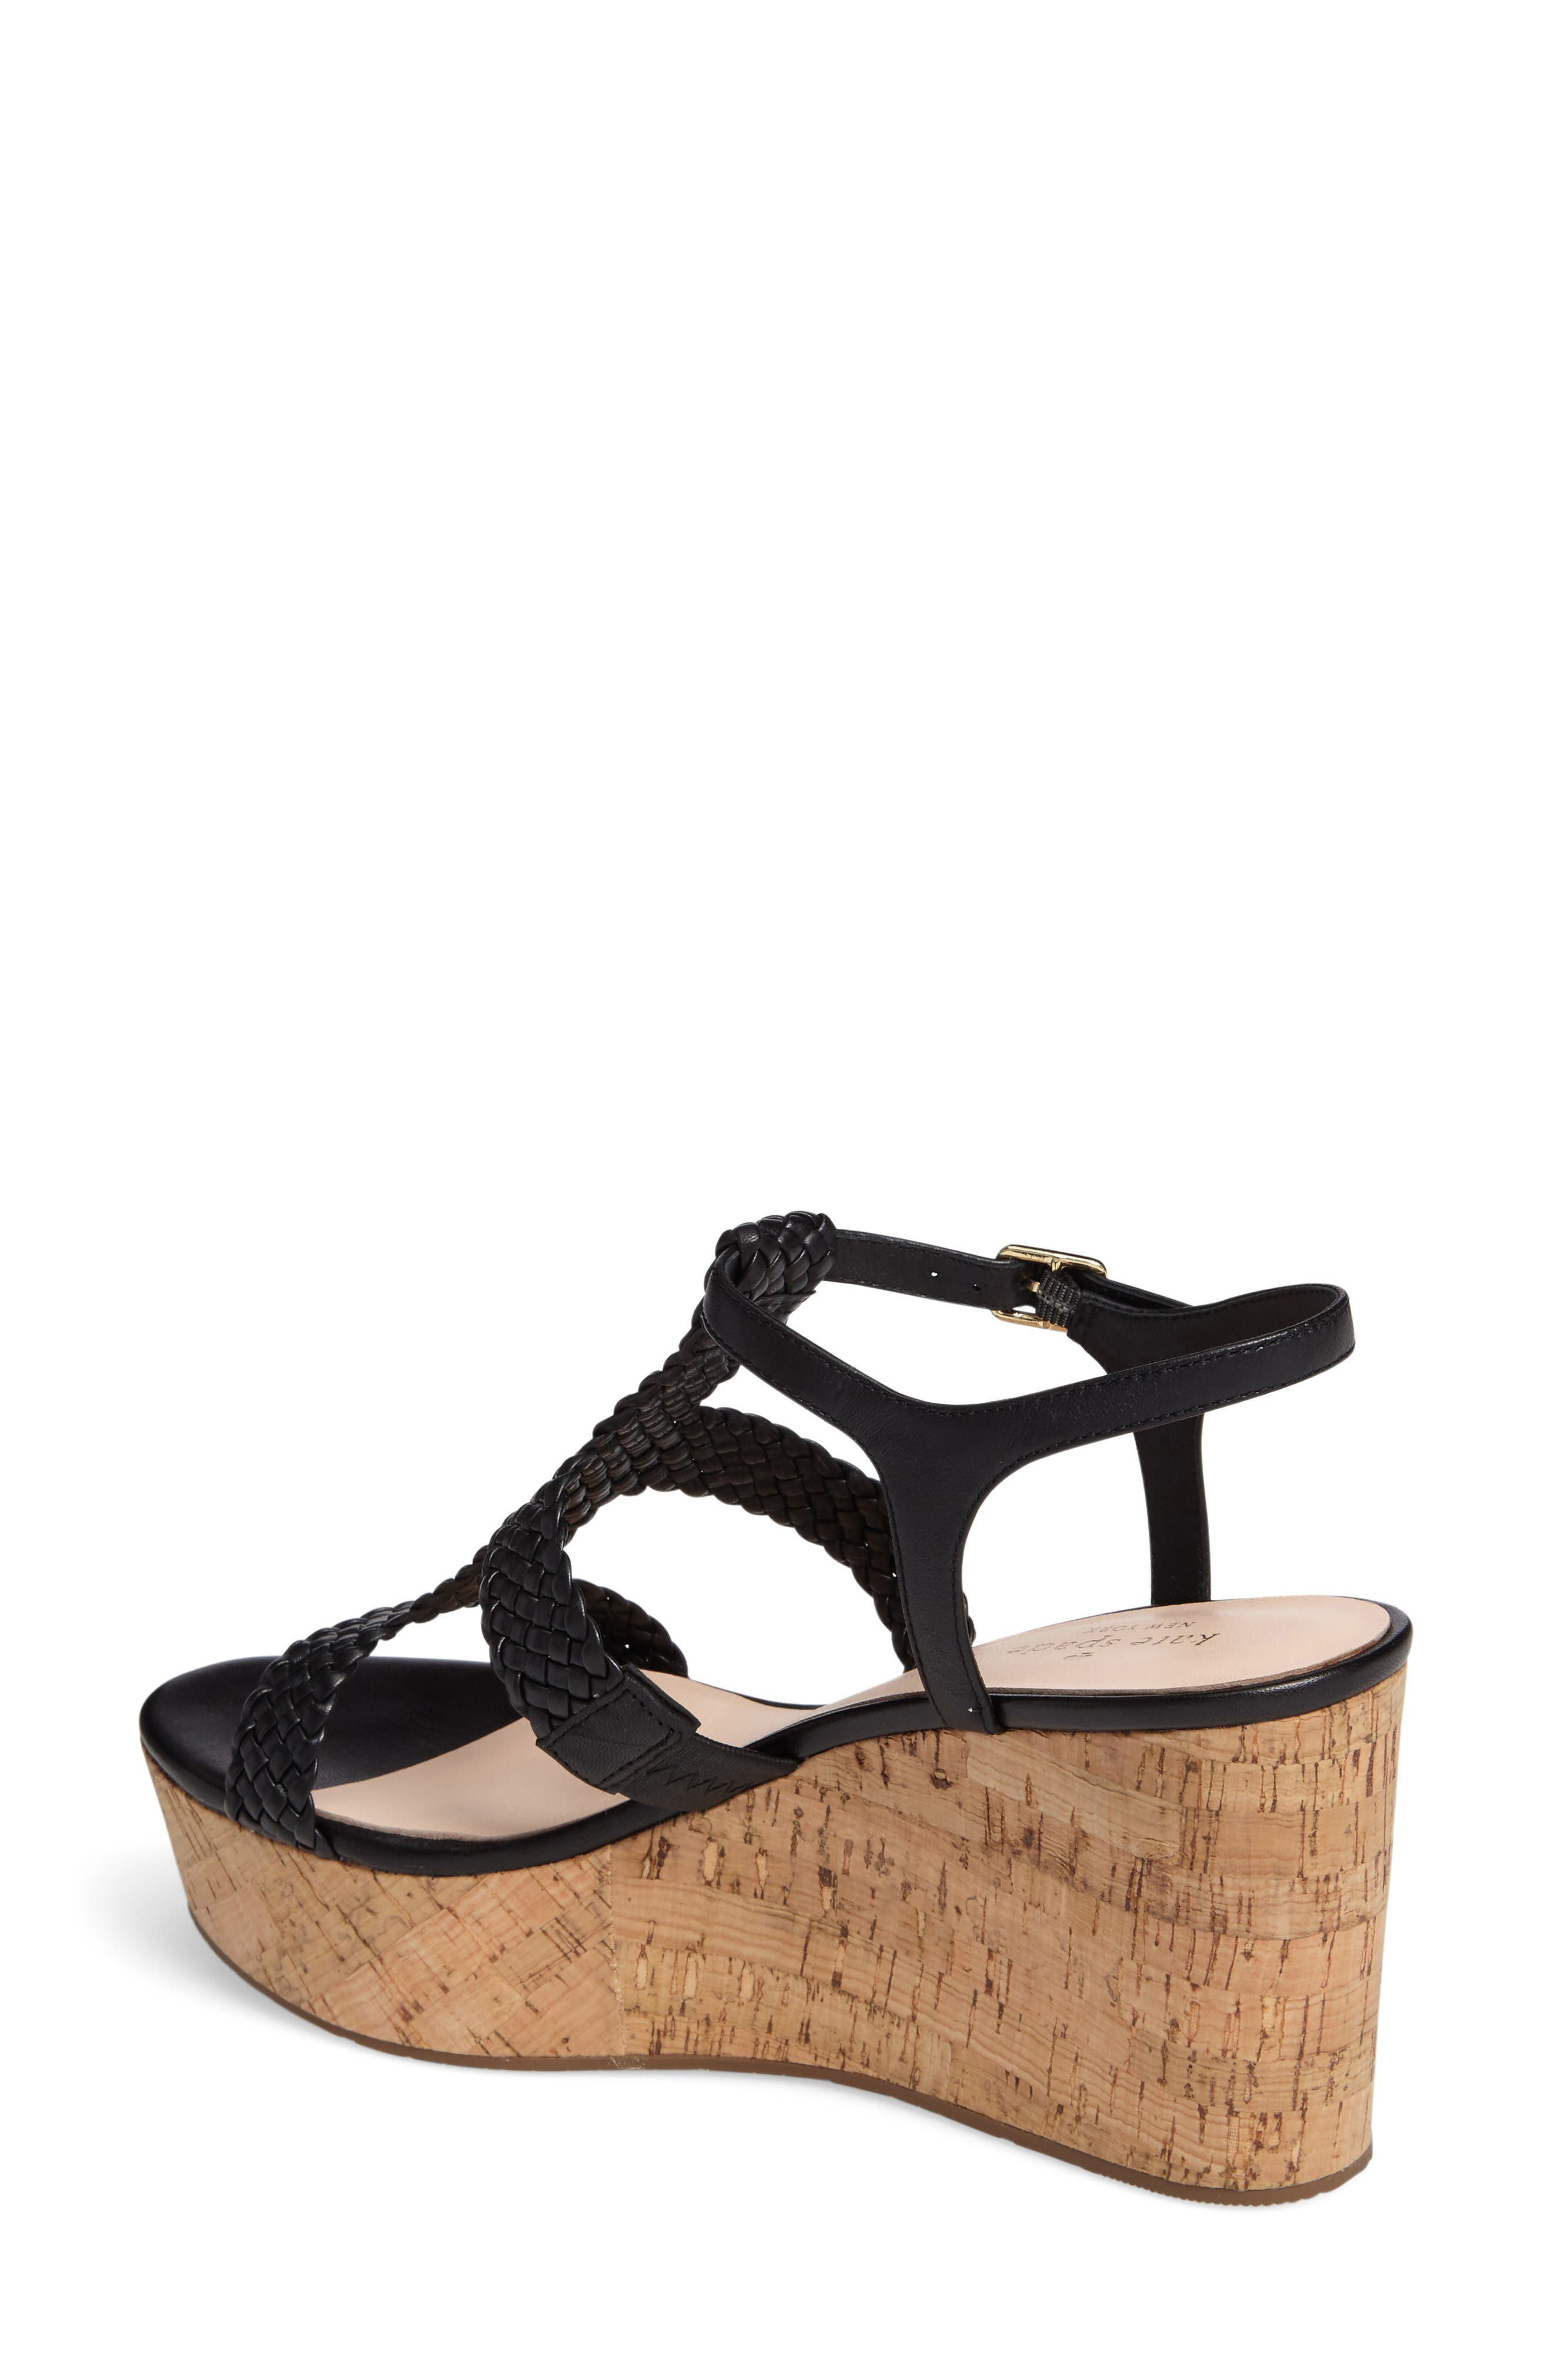 KATE SPADE NEW YORK, tianna platform sandal, Alternate thumbnail 2, color, 001